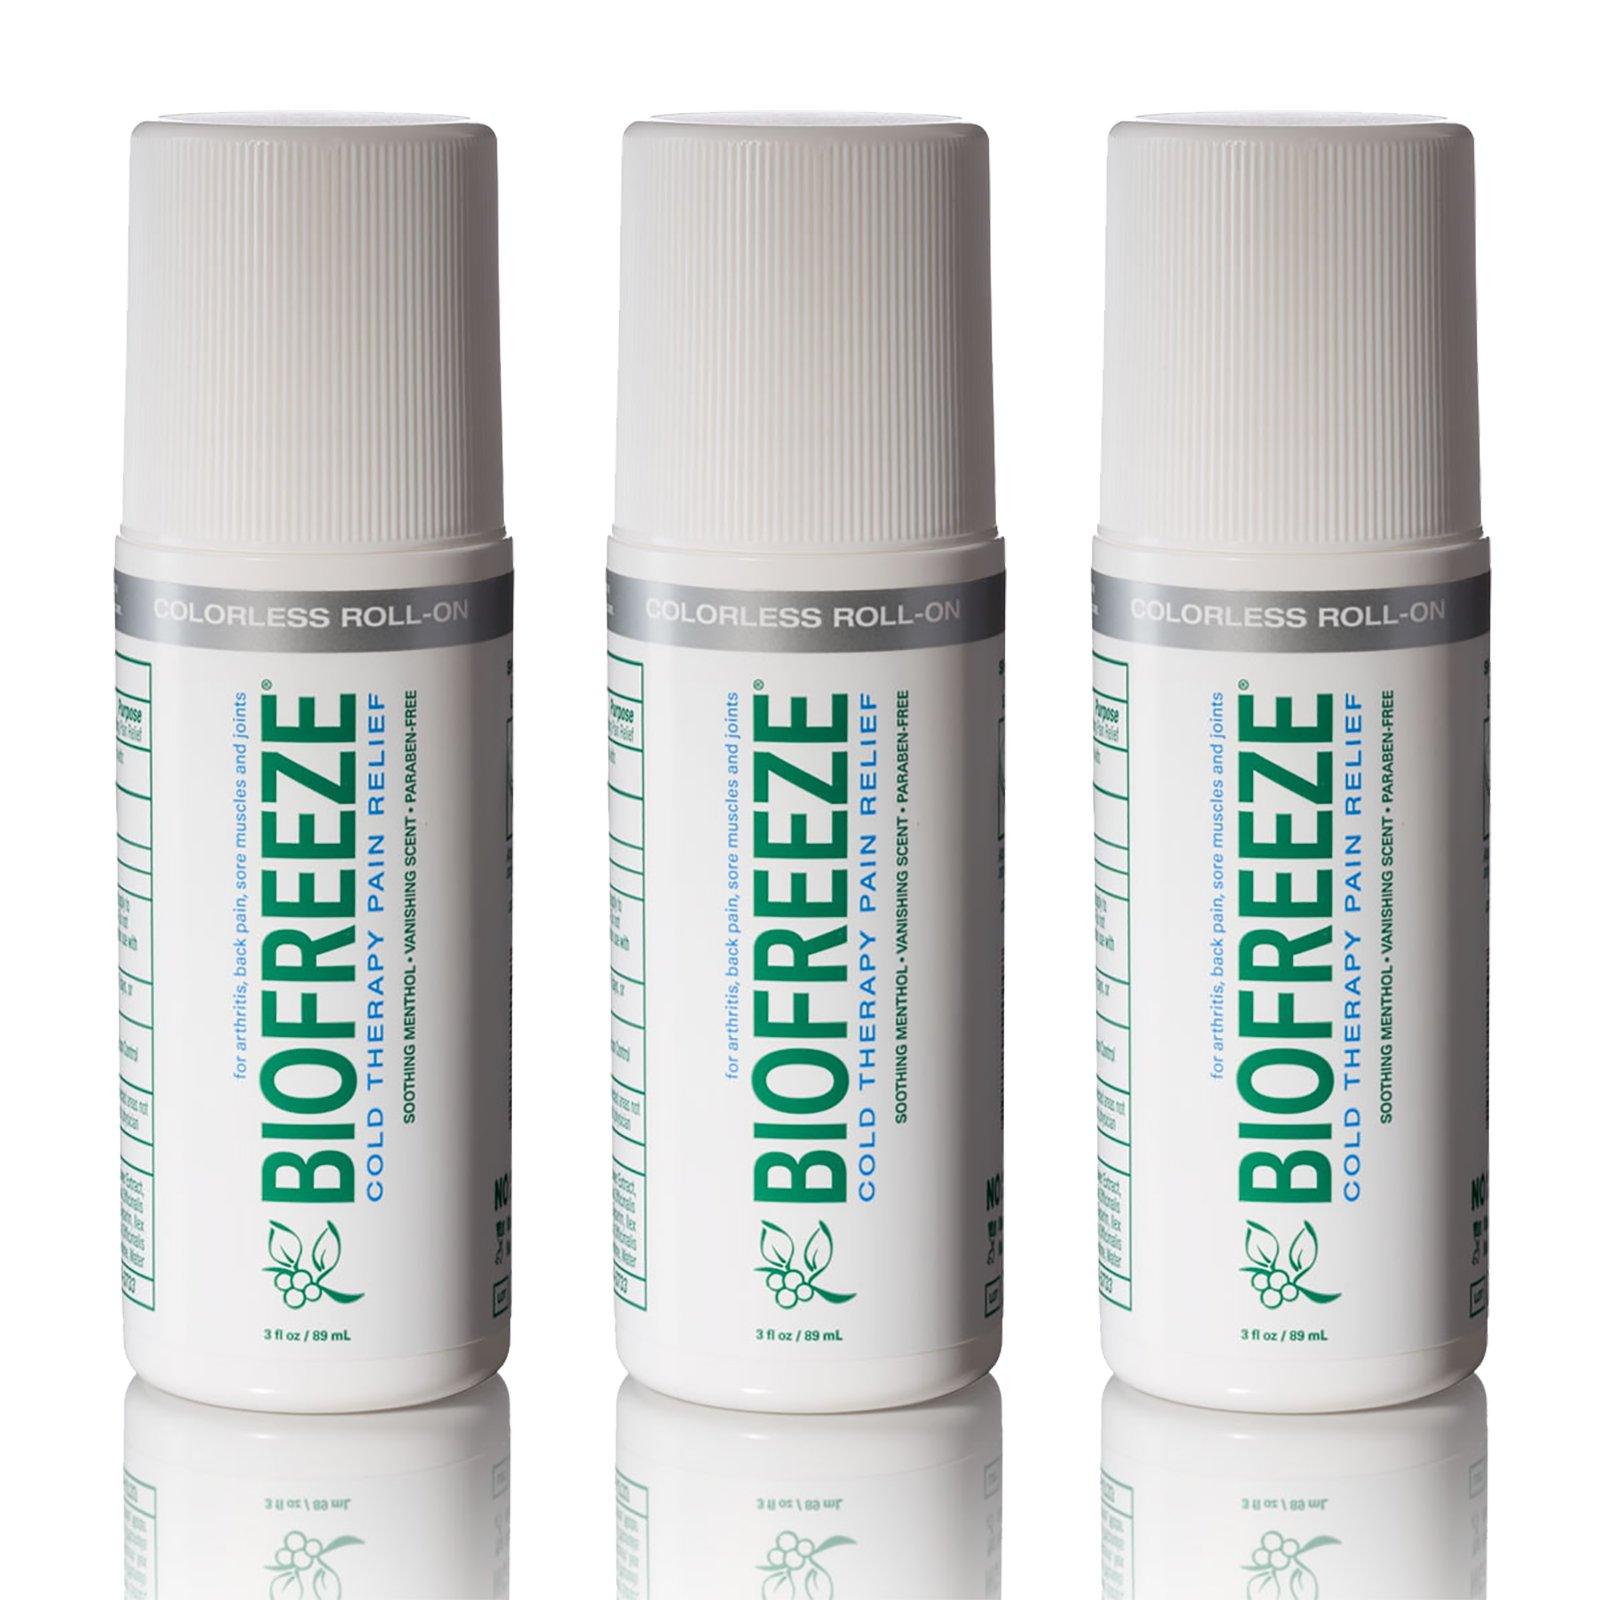 Biofreeze Pain Relief Gel for Arthritis, 3 oz. Rollon Topical Analgesic, Fast Acting and Long Lasting Cooling Pain Reliever Cream for Muscle Pain, Joint Pain, Back Pain,Colorless Formula